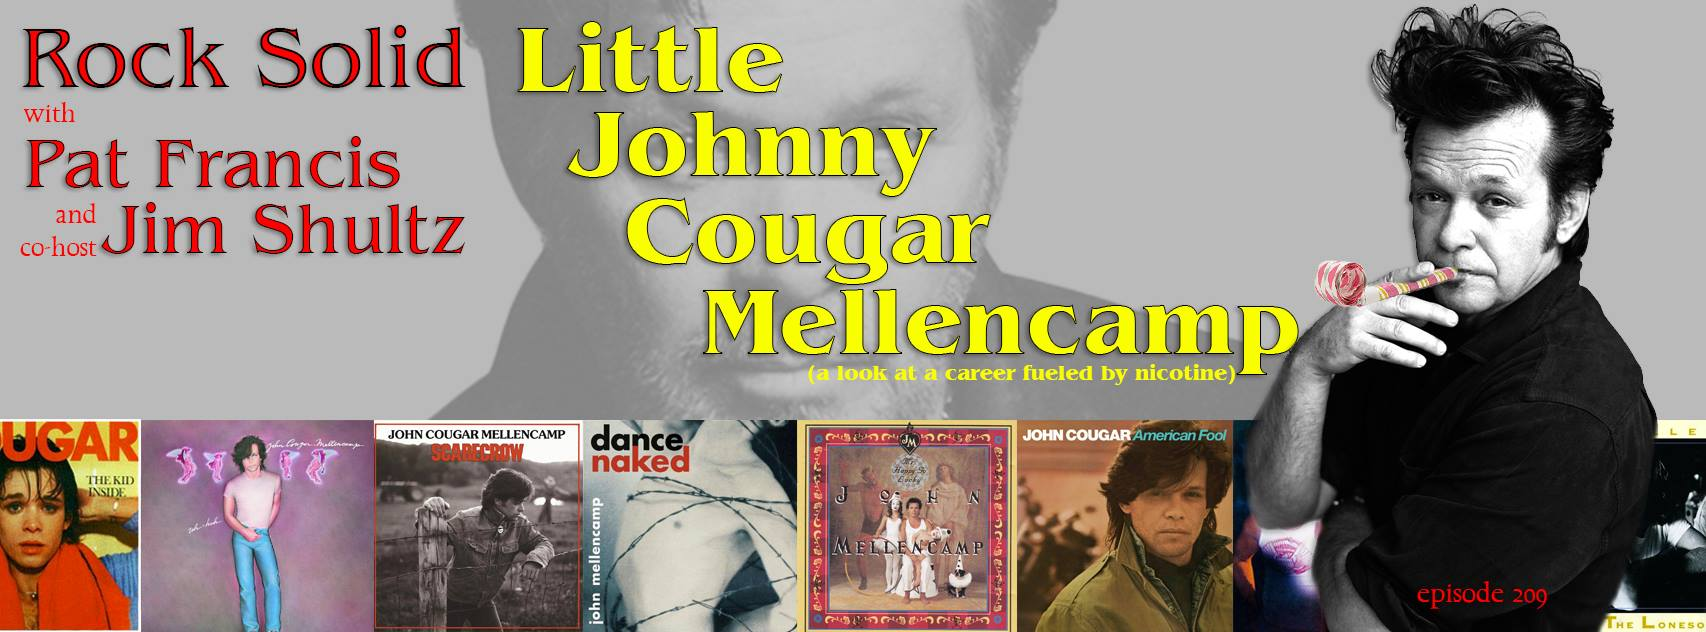 209 - Little Johnny Cougar Mellencamp.jpg